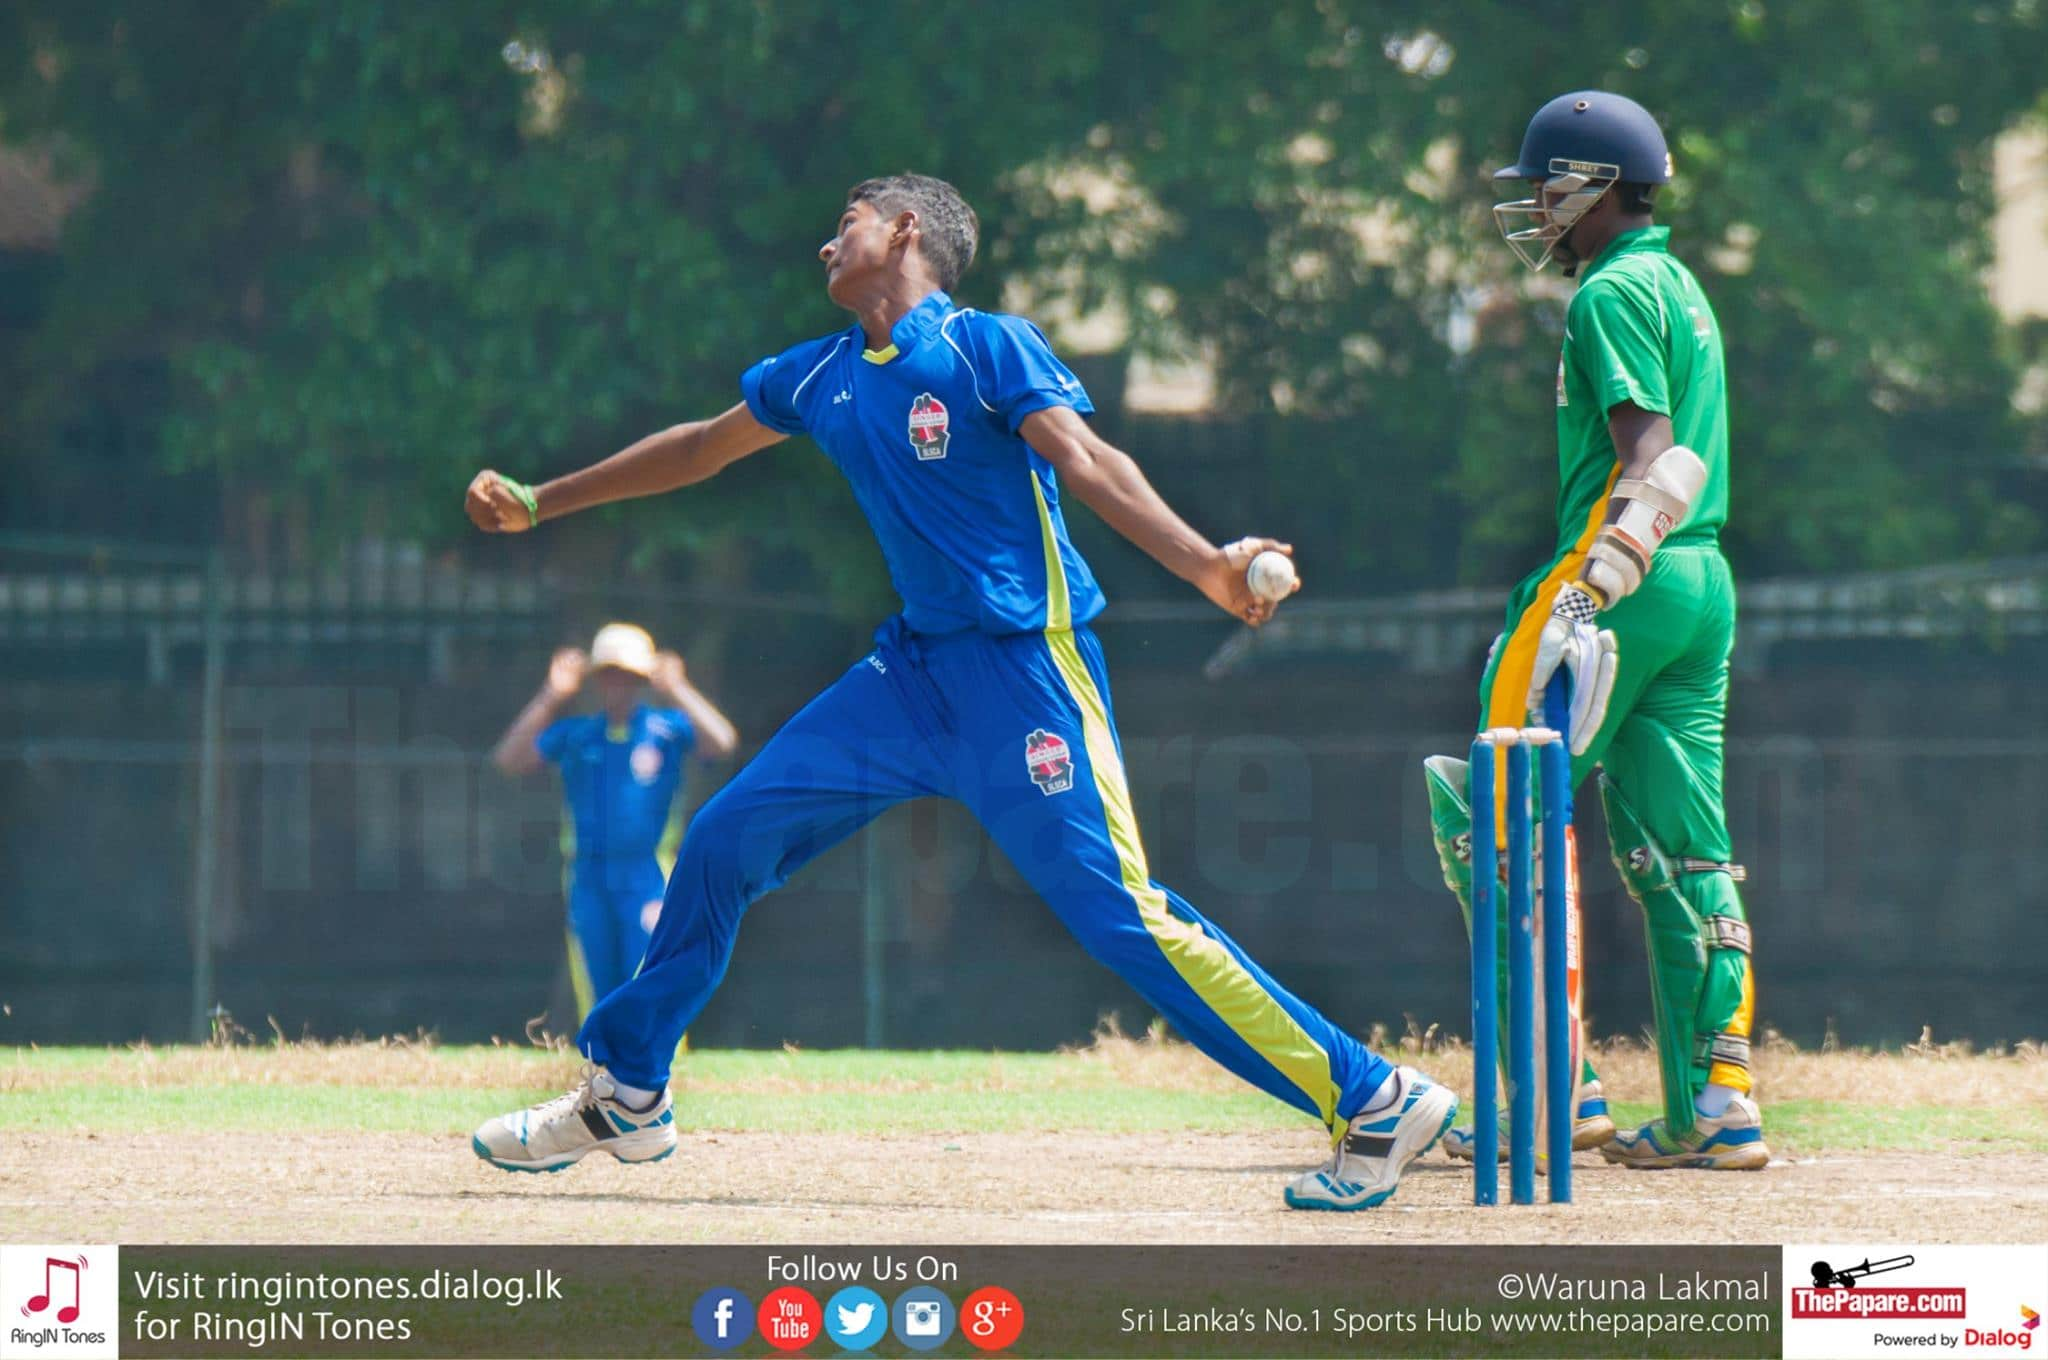 St. Aloysius College, Galle recorded a stunning 2-wicket victory over the strong Isipathana College outfit in their 'Singer Trophy' Under 19 Schools T20 Tournament 2015/16 Pre- Quarter Final encounter played at Mahinda College, Grounds on Thursday. With this win, St. Aloysius College advanced to the quarter-finals where they will take on S. Thomas' College, Mount Lavinia. After opting to bat first, Isipathana managed to score only 104 runs as they were bowled out in the penultimate delivery of their innings. Wicket-keeper batsman Vishad Randika top- scored with 25 while left-handed vice-captain Pramod Maduwantha made 17. In-form bowlers, Ravindu Sanjana and Sajith Sankalpa took 4 wickets each. The boys from Galle chased down the target with two balls to spare. Gihan Niroshan played a blinder of an innings to anchor them to victory scoring an unbeaten 37 runs. Left-arm spinner Lahiru Dilshan picked up 3 wickets for the hosts'. Isipathana - 104 in 19.5 overs (Vishad Randika 25, Pramodh Madhuwantha 17, Ravindu Sanjana 4/10, Sajith Sankalpa 4/17) St. Aloysius - 106/8 in 19.4 overs (Gihan Niroshan 37 n.o., Navindu Nirmal 17, Lahiru Dilshan 3/19